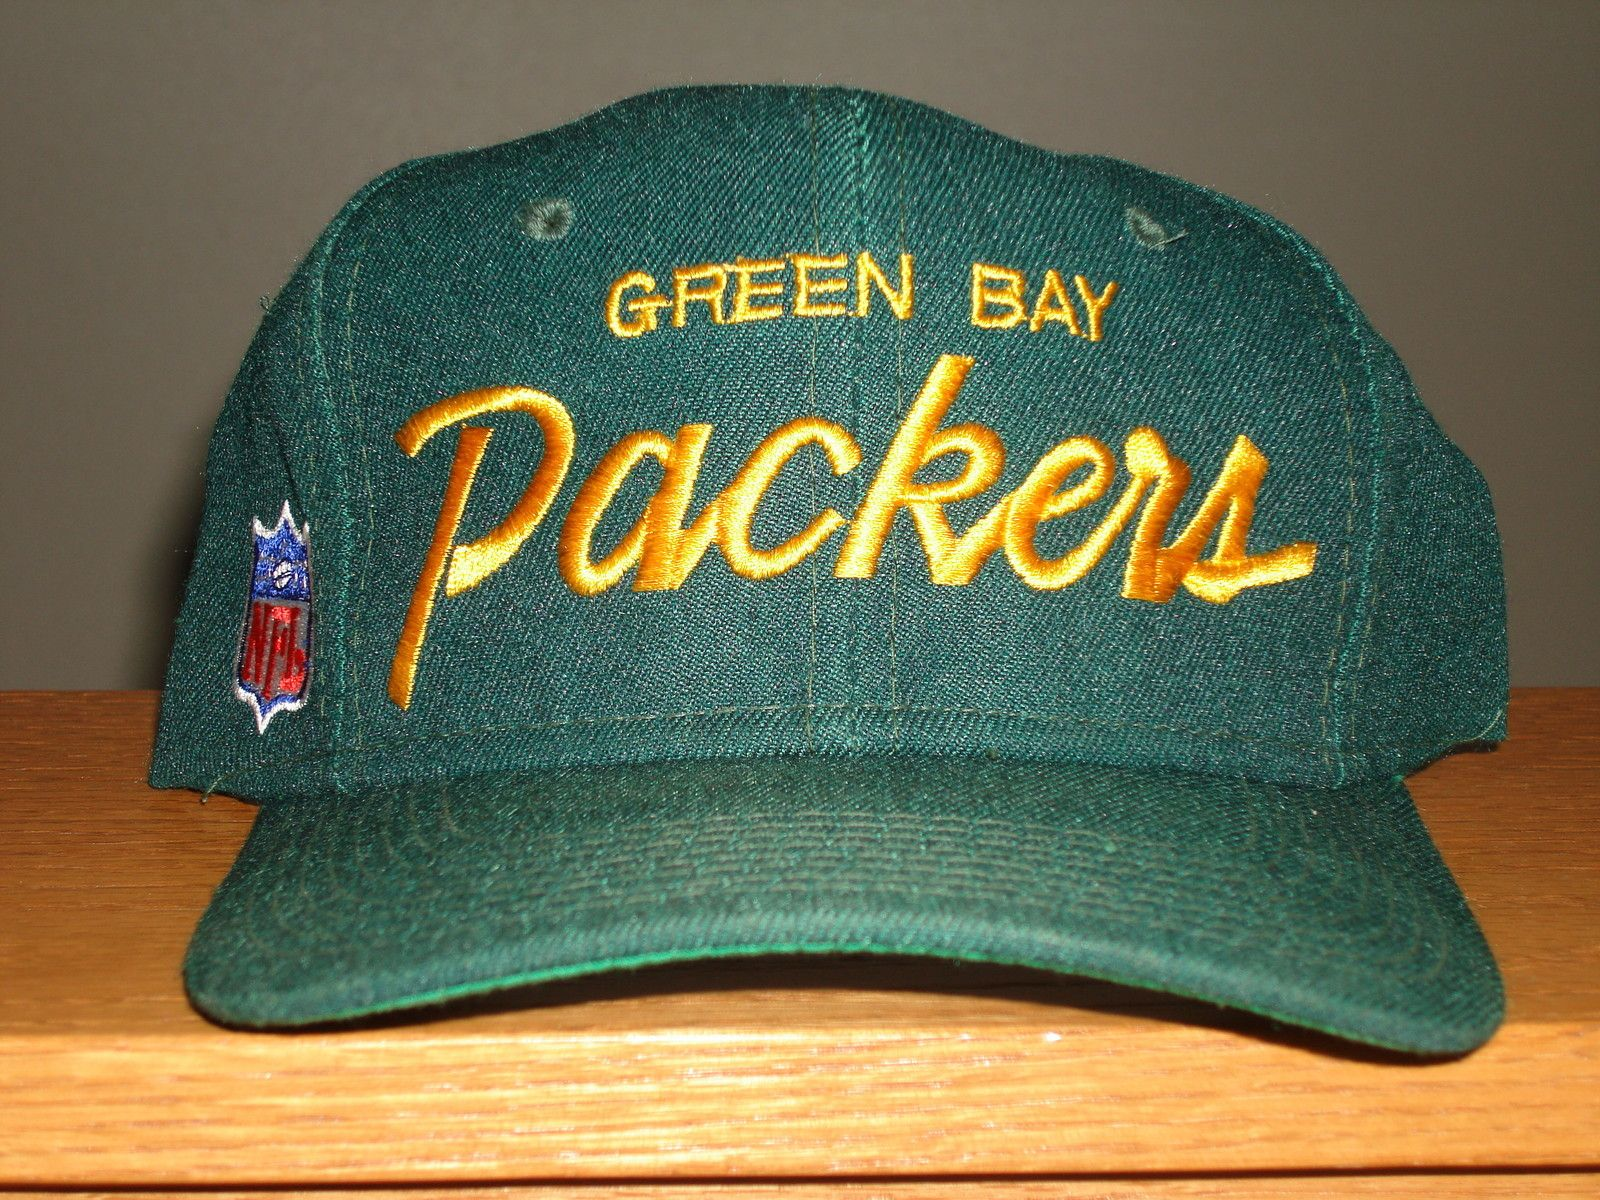 Green Bay Packers Vintage Sports Specialties Hat Snapback Script Cap Green Bay Packers Vintage Green Bay Packers Vintage Sports